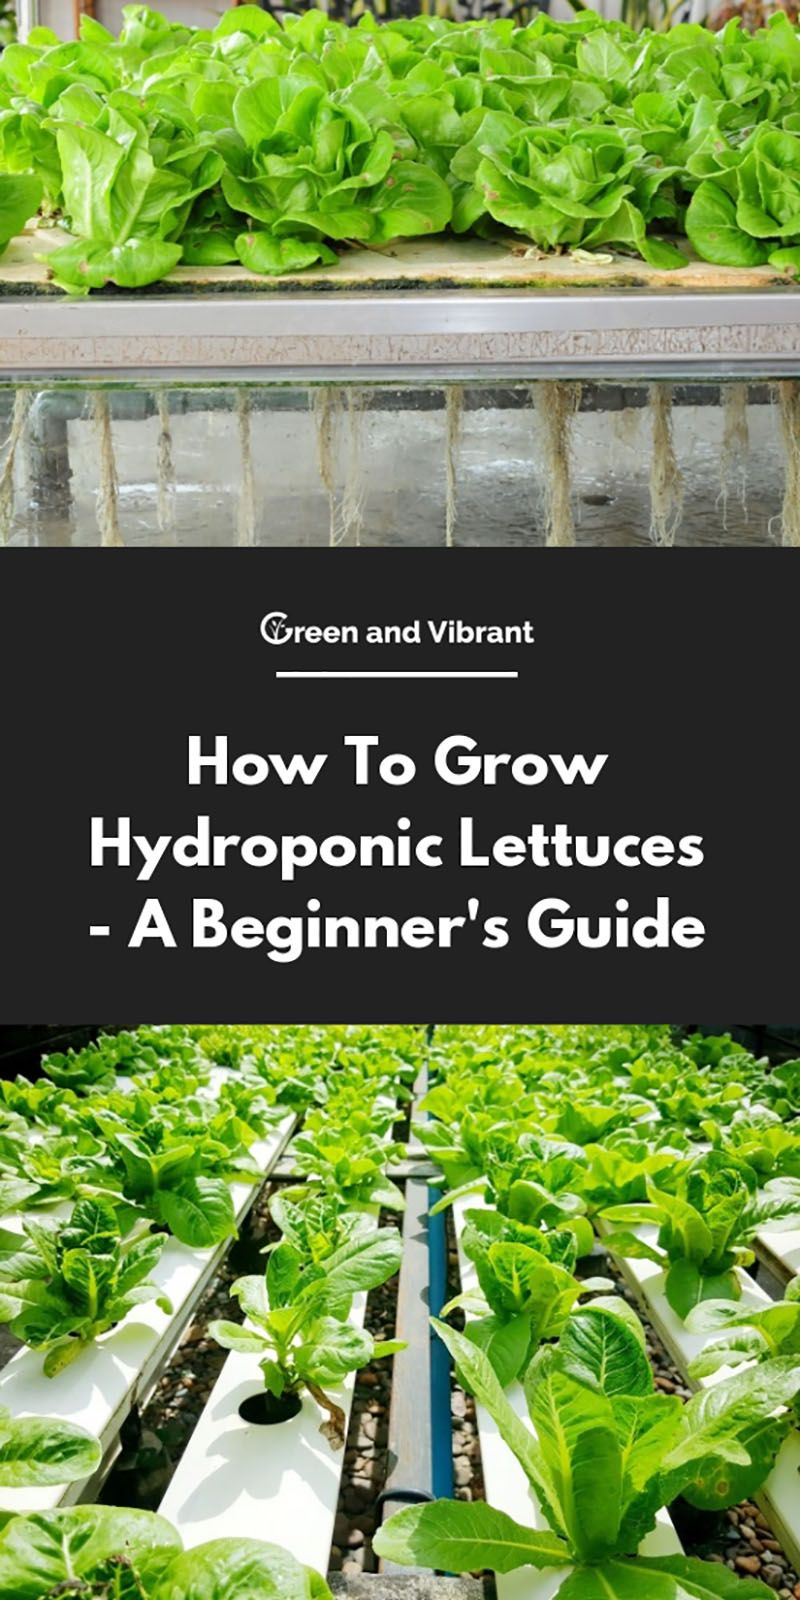 How To Grow Hydroponic Lettuces A Beginner S Guide Hydroponic